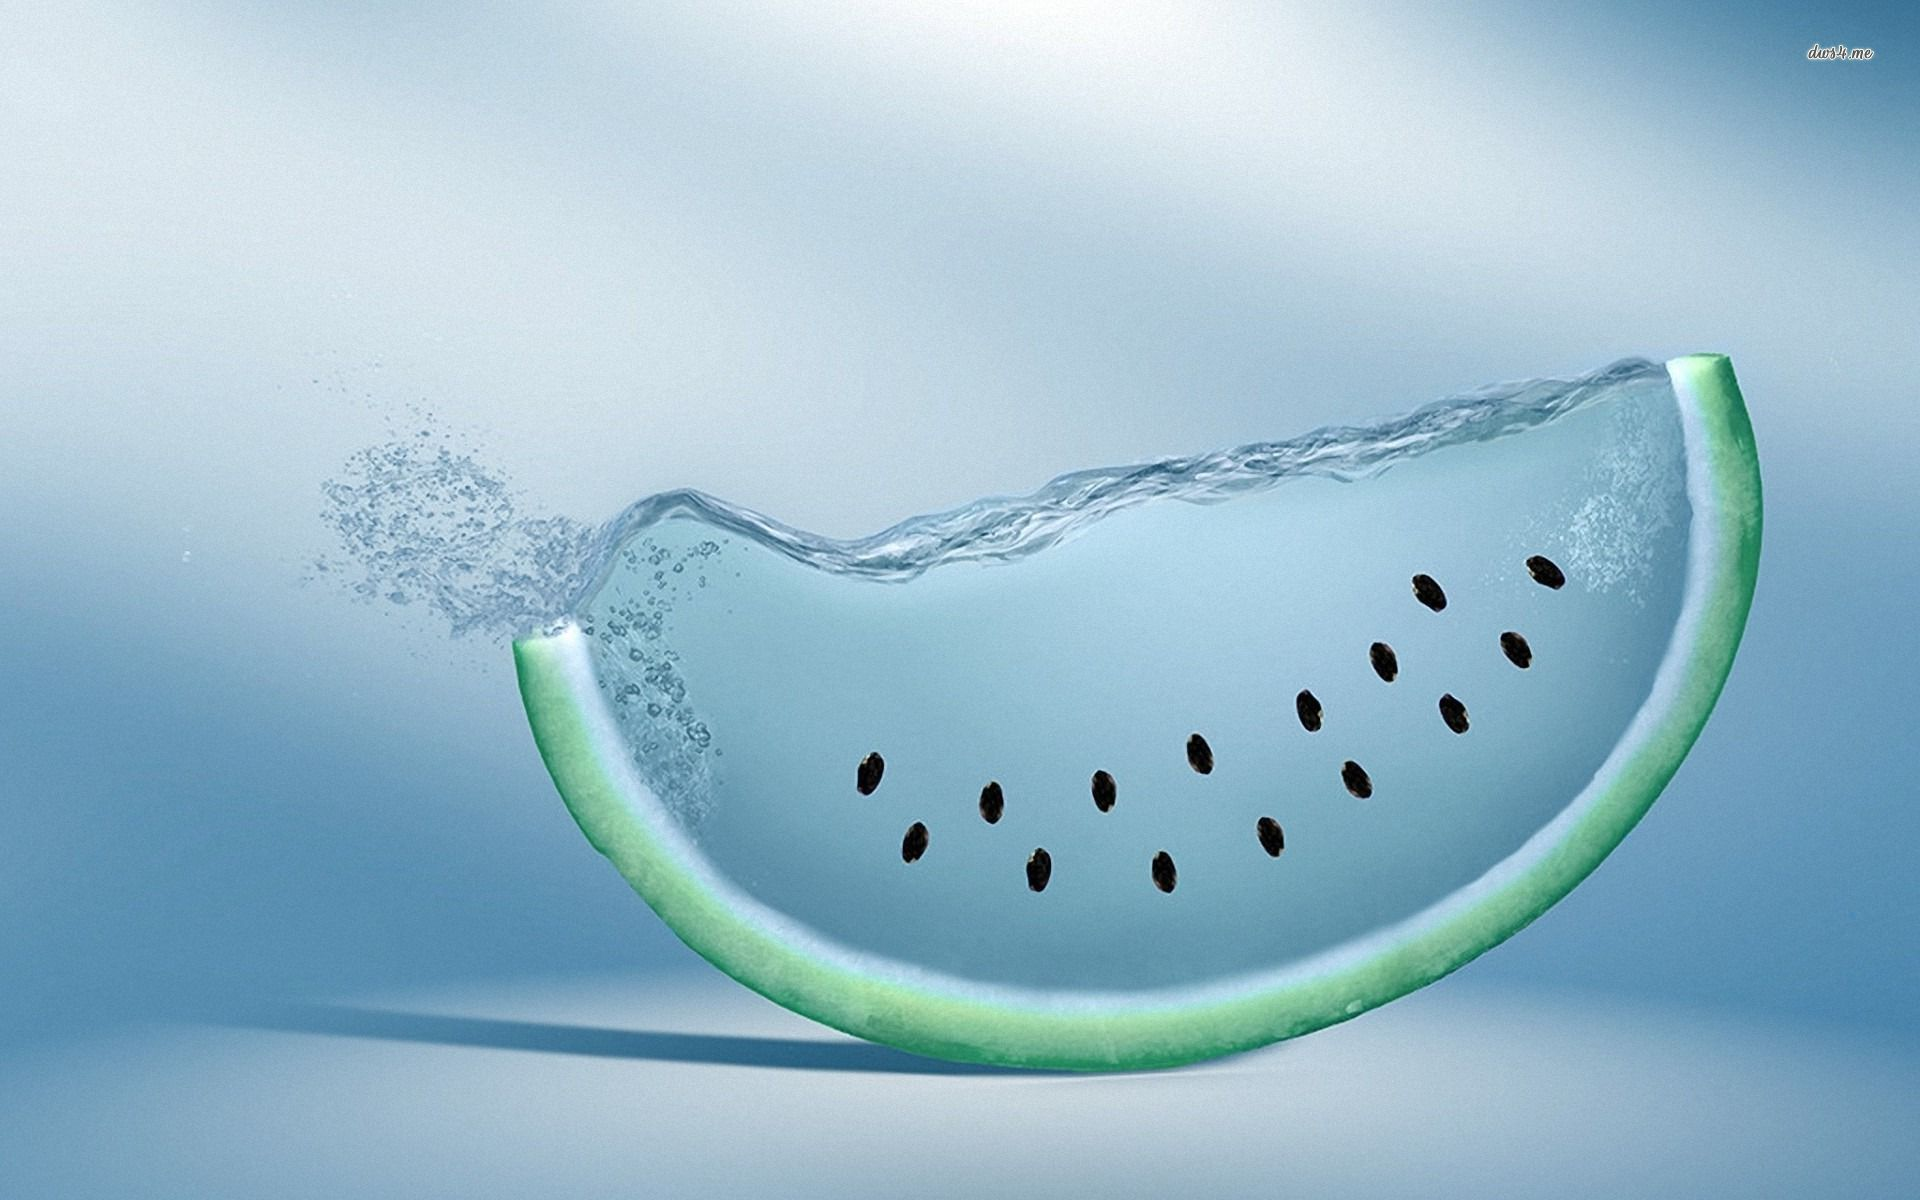 ... Watermelon wallpaper 1920x1200 ...